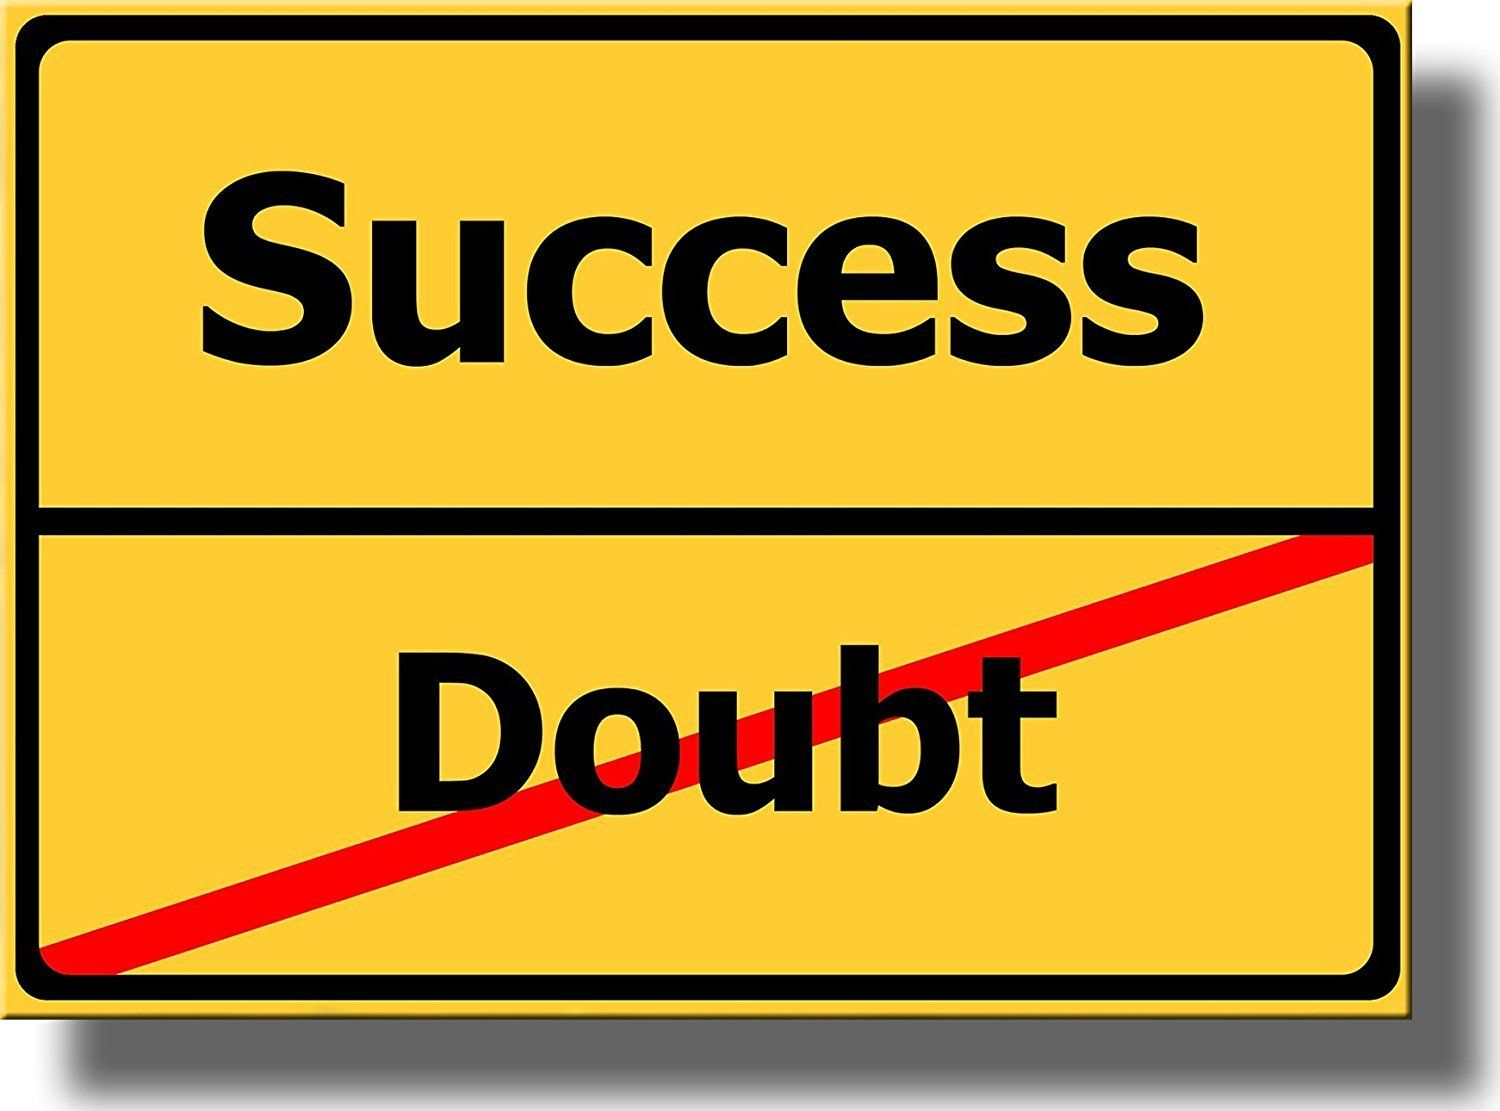 Success Doubt Sign Picture on Acrylic , Wall Art Décor, Ready to ...